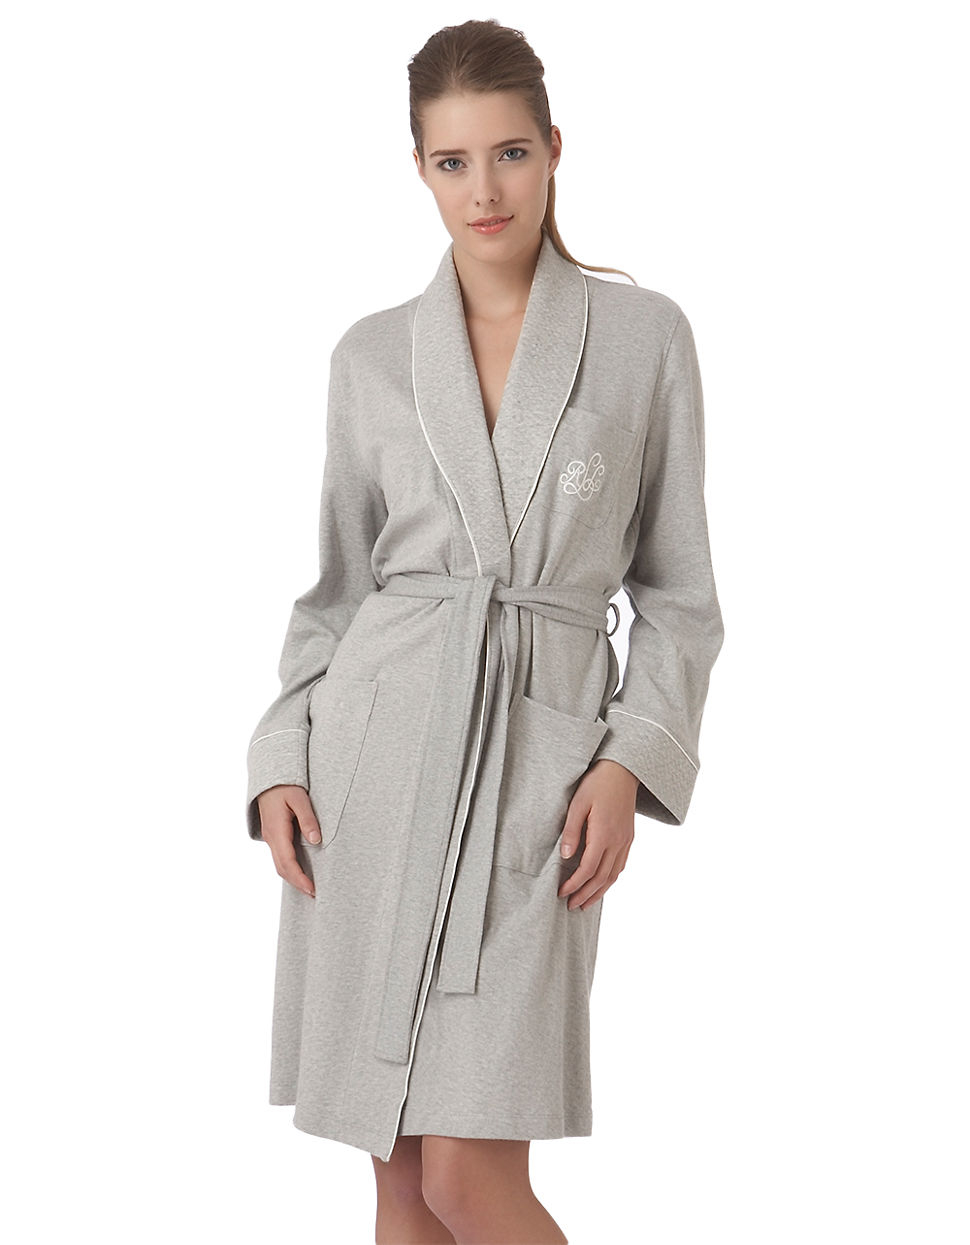 lauren by ralph lauren plus the hartford robe with quilted collar and cuffs in gray lyst. Black Bedroom Furniture Sets. Home Design Ideas